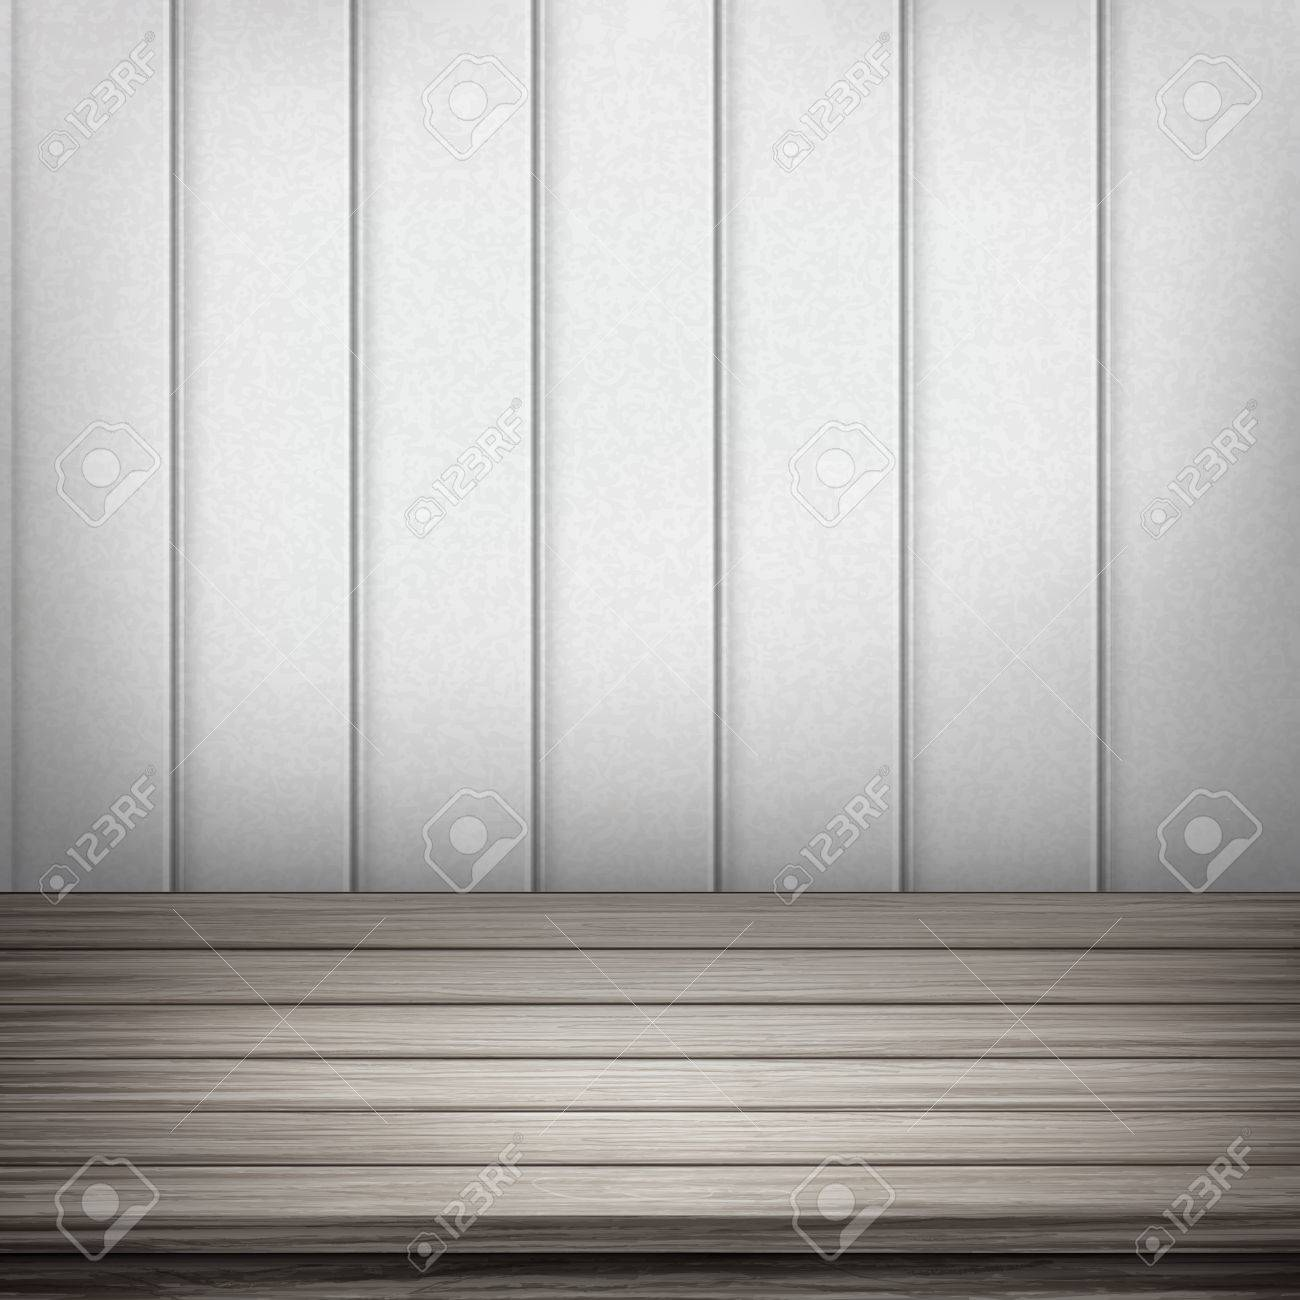 Interior wooden shelves free vector - Close Up Look At Empty Interior Wooden Wall And Floor Stock Vector 35166226